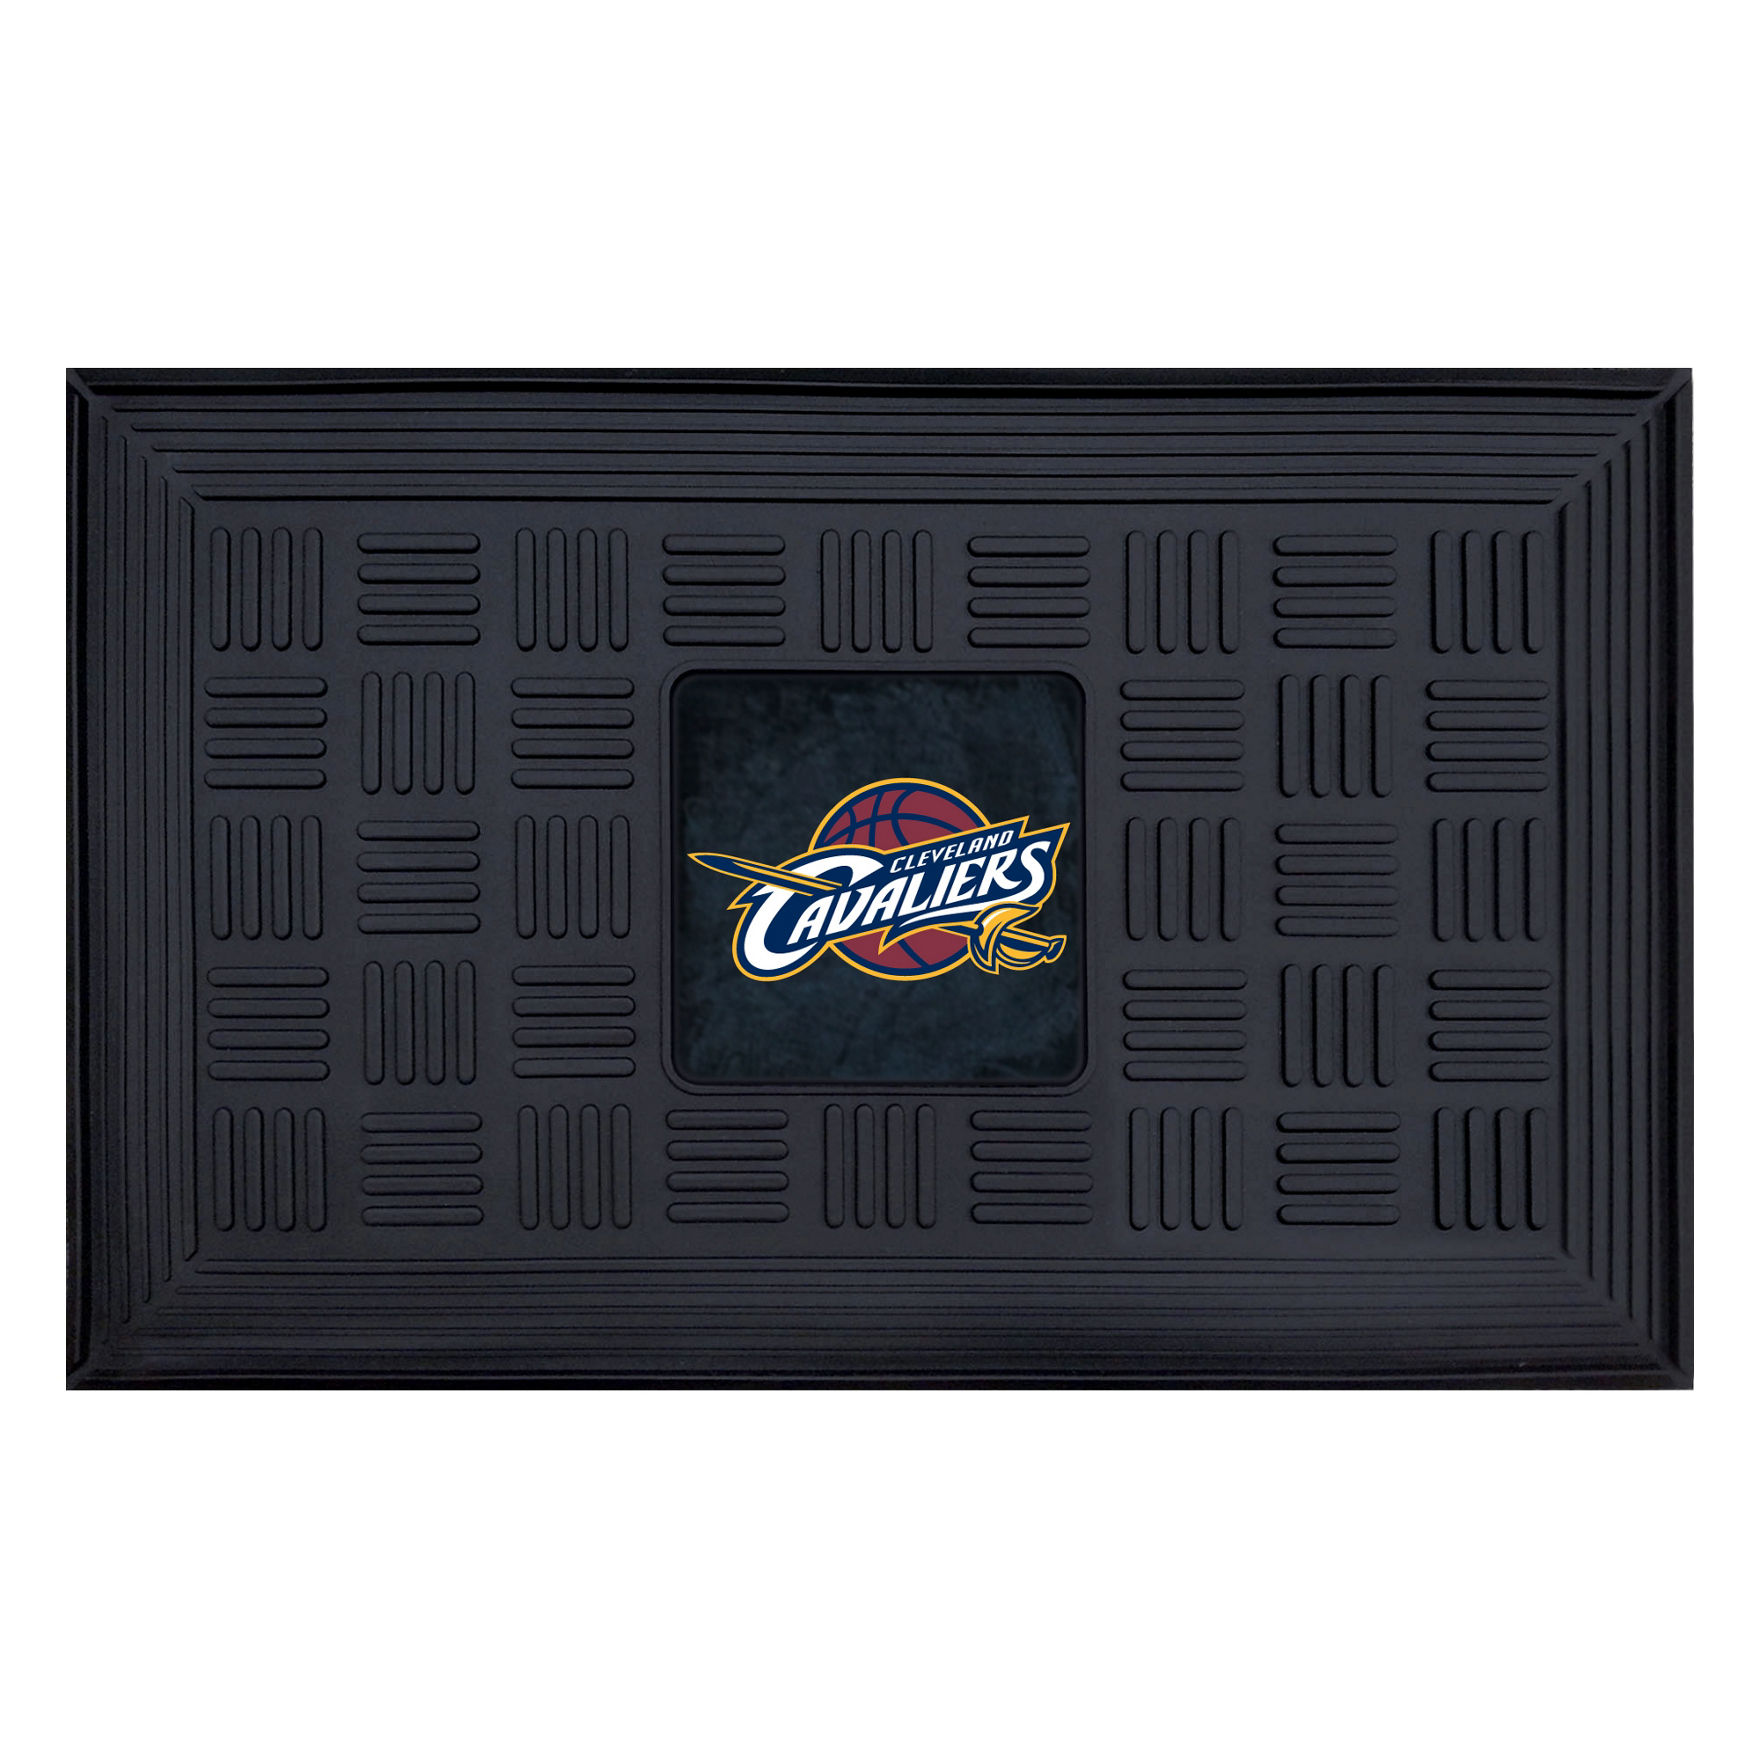 Fanmats Black Outdoor Rugs & Doormats NBA Outdoor Decor